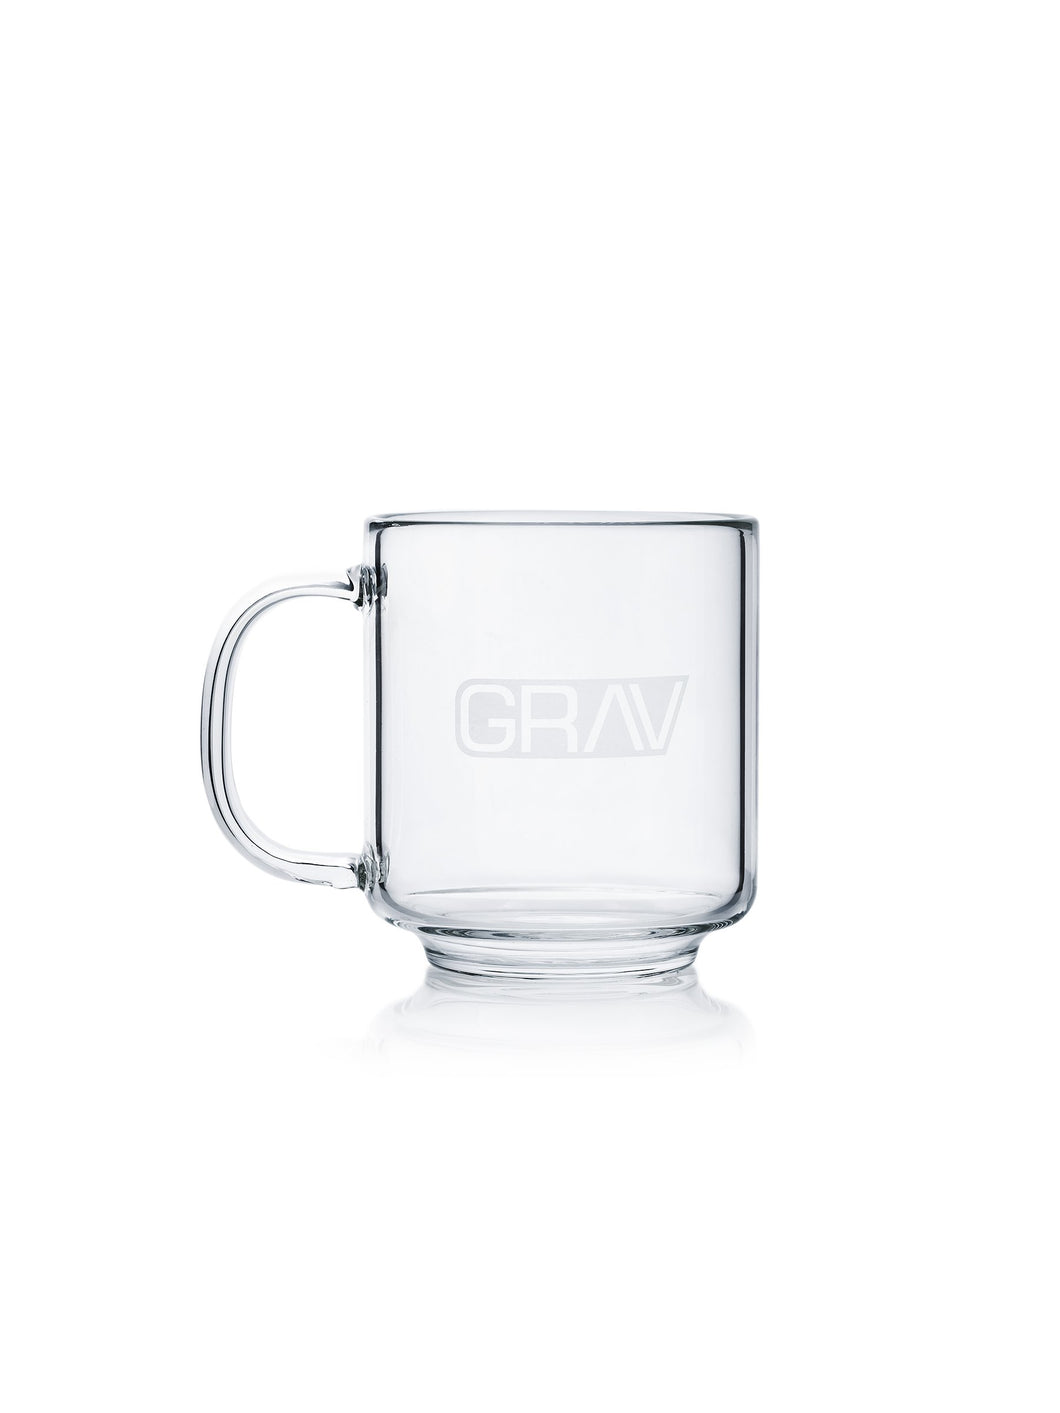 Grav Coffee Cup-MN Mean Merch